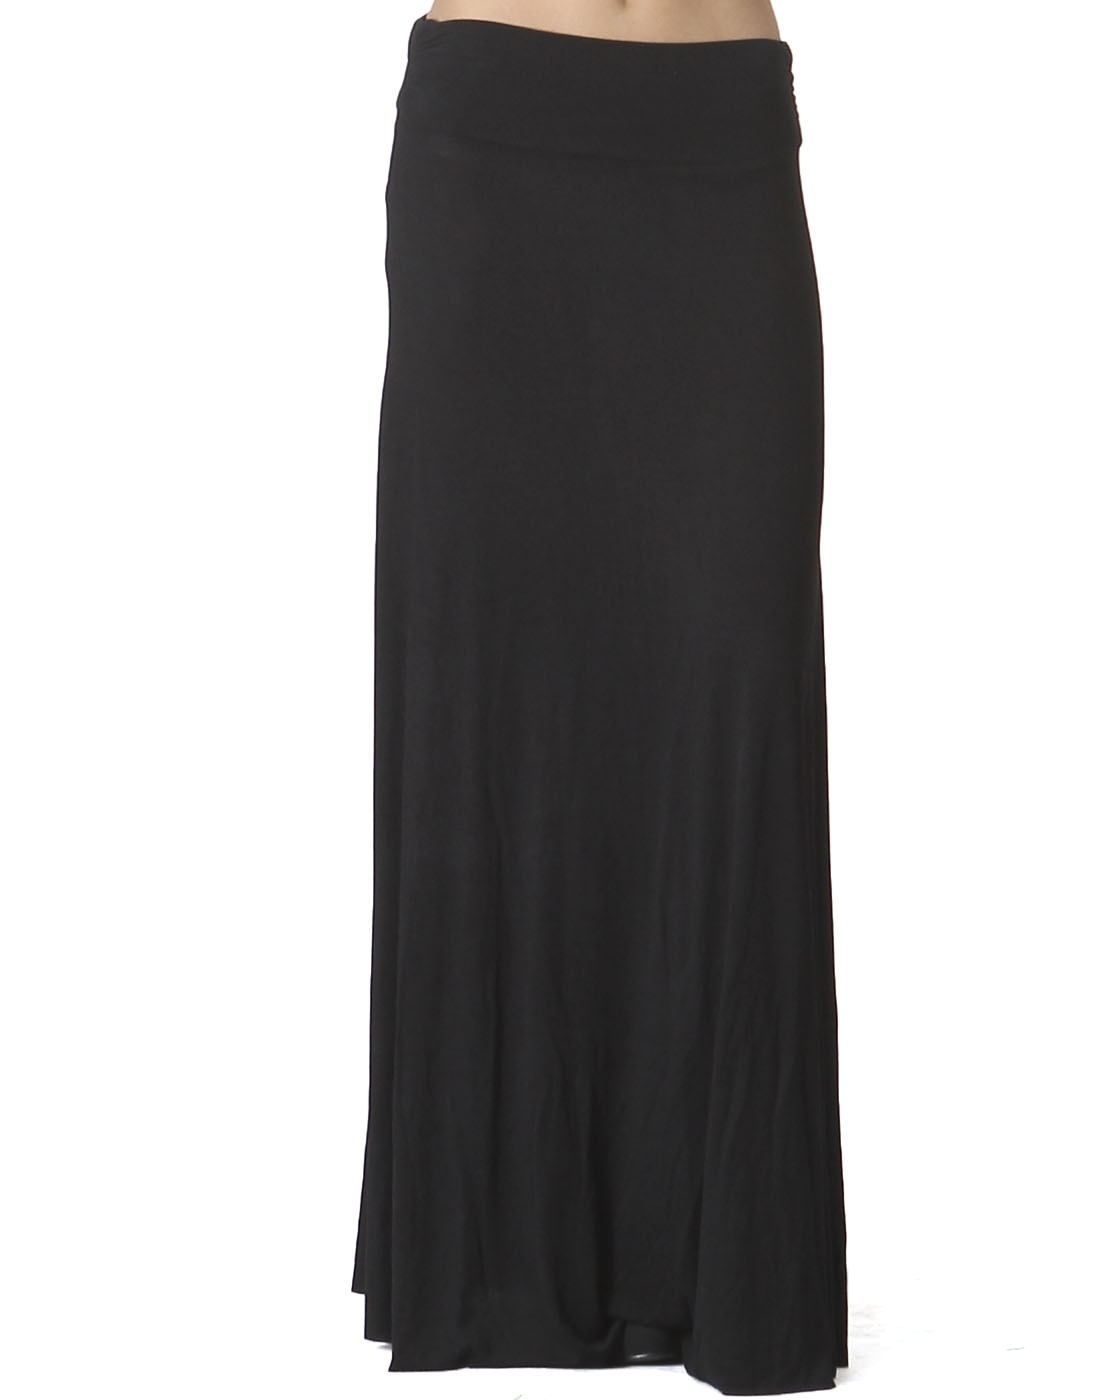 Women's Solid Knit Maxi Skirt - orangeshine.com